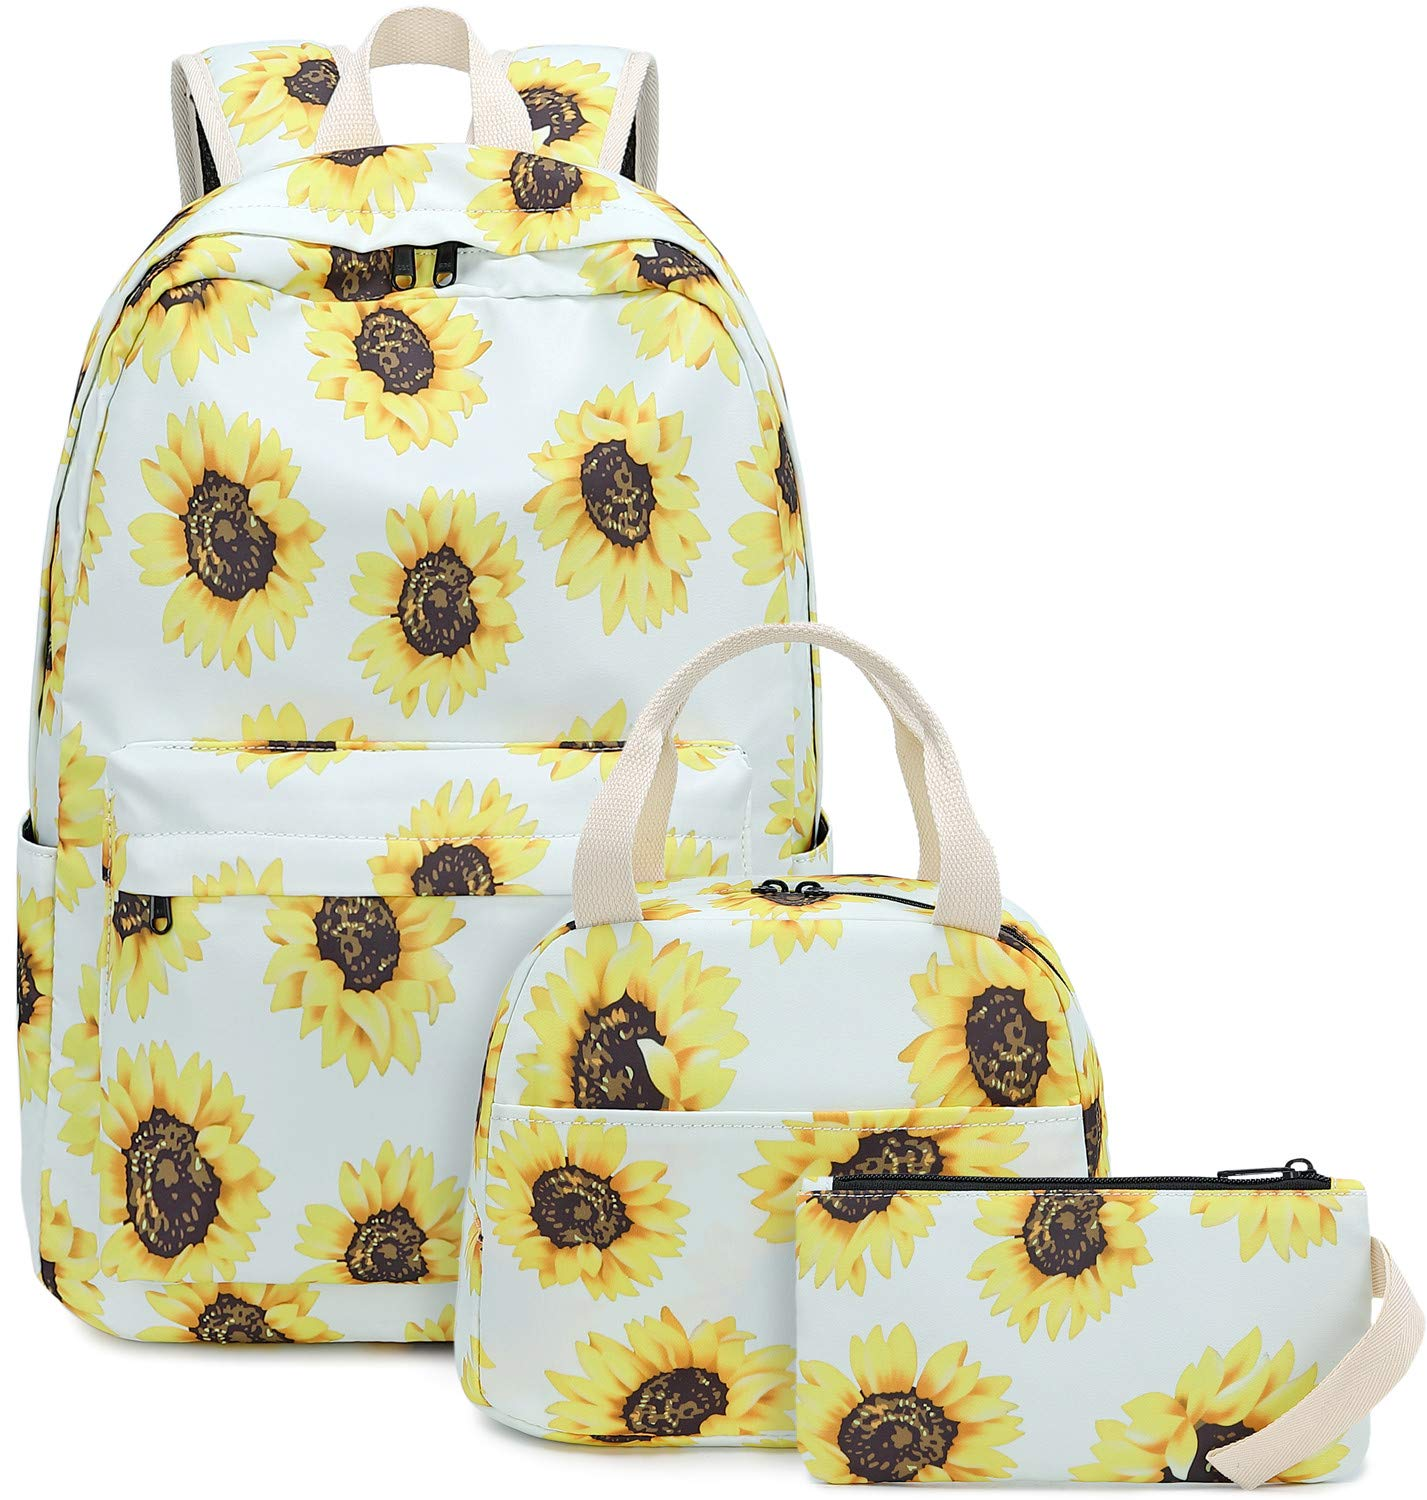 BLUBOON Teens Backpack Set Girls School Bags Kids Bookbags 3 in 1 (Sunflower White) by BLUBOON